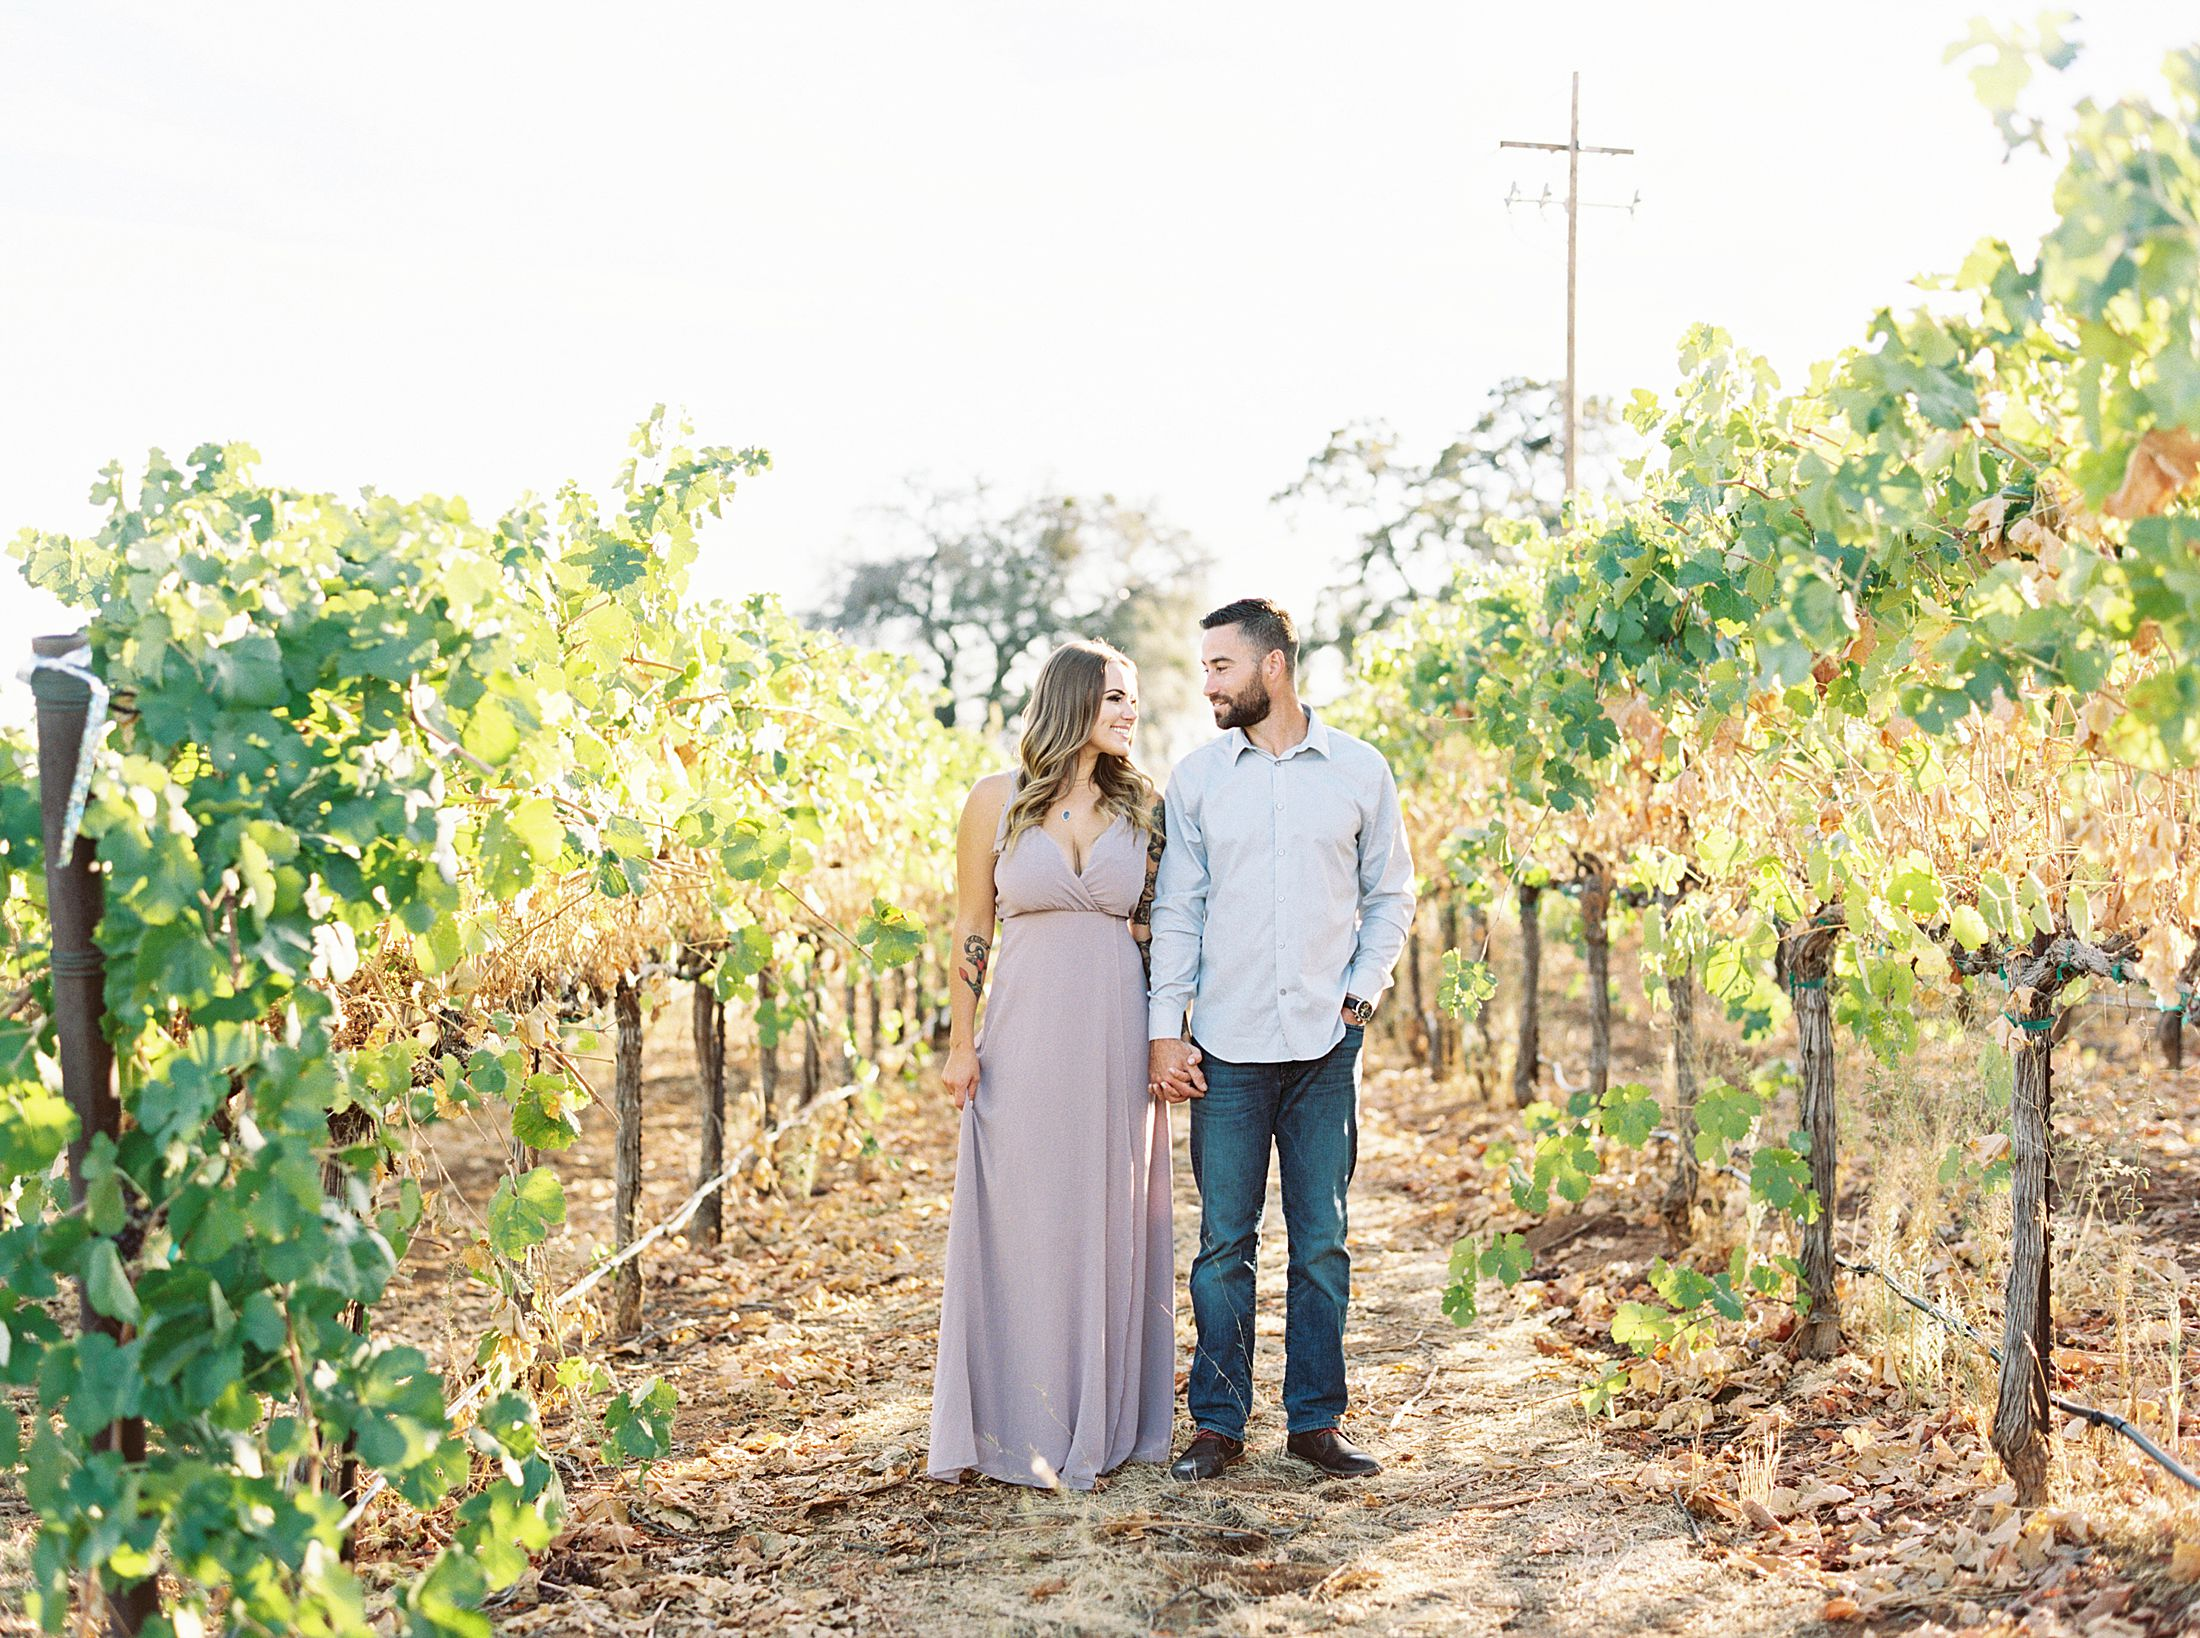 Helwig Winery Engagement Session - Steffanie and Rich - Jenn Robirds Events - Ashley Baumgartner - Sacramento Wedding Photographer - Private Estate Wedding Photographer - Helwig WInery Wedding_0074.jpg